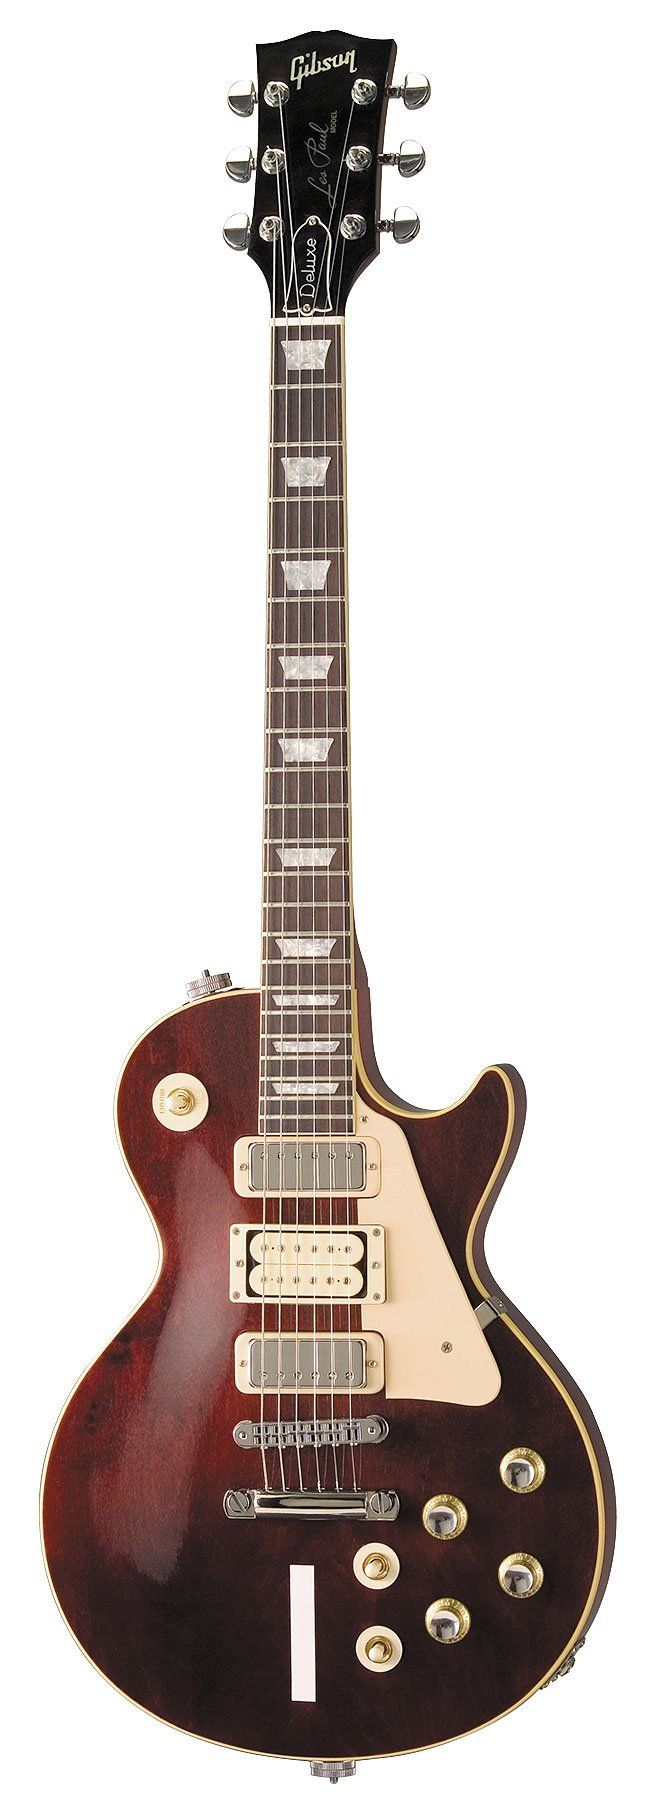 gibson les paul pete townshend nr 1 guitarism pinterest see more ideas about itunes my. Black Bedroom Furniture Sets. Home Design Ideas